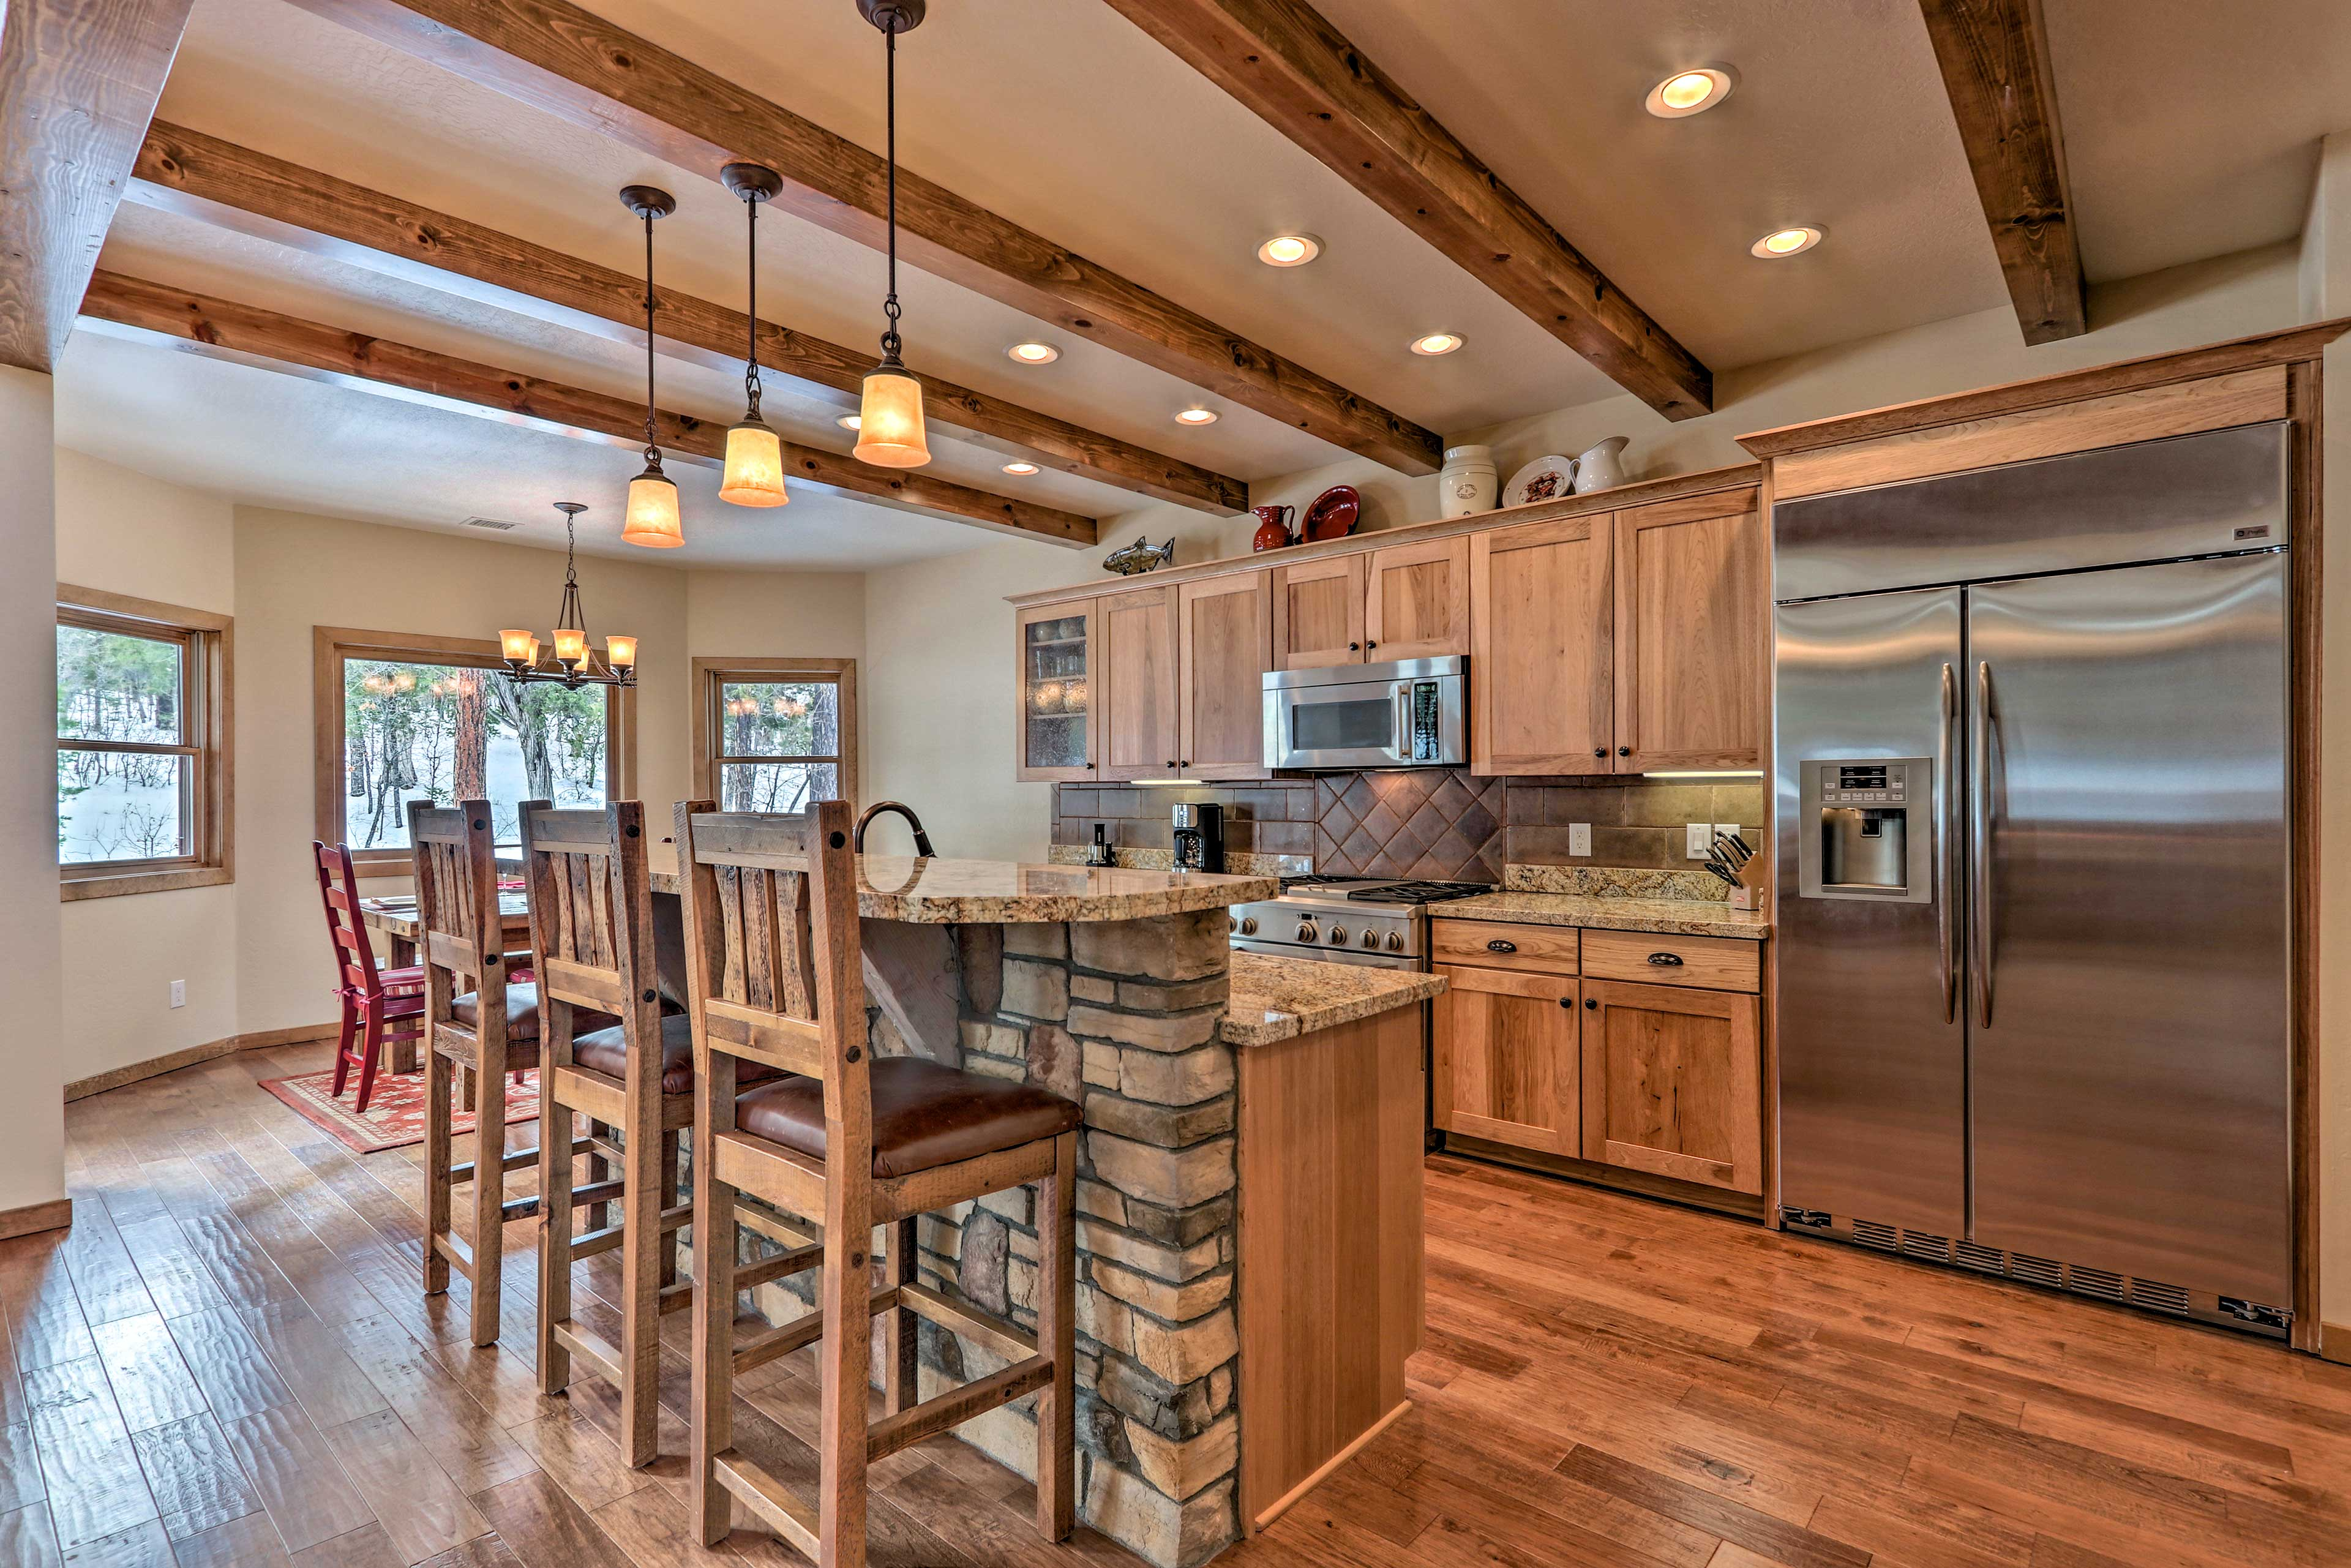 Easily prepare meals for up to 10 guests in this spacious kitchen.